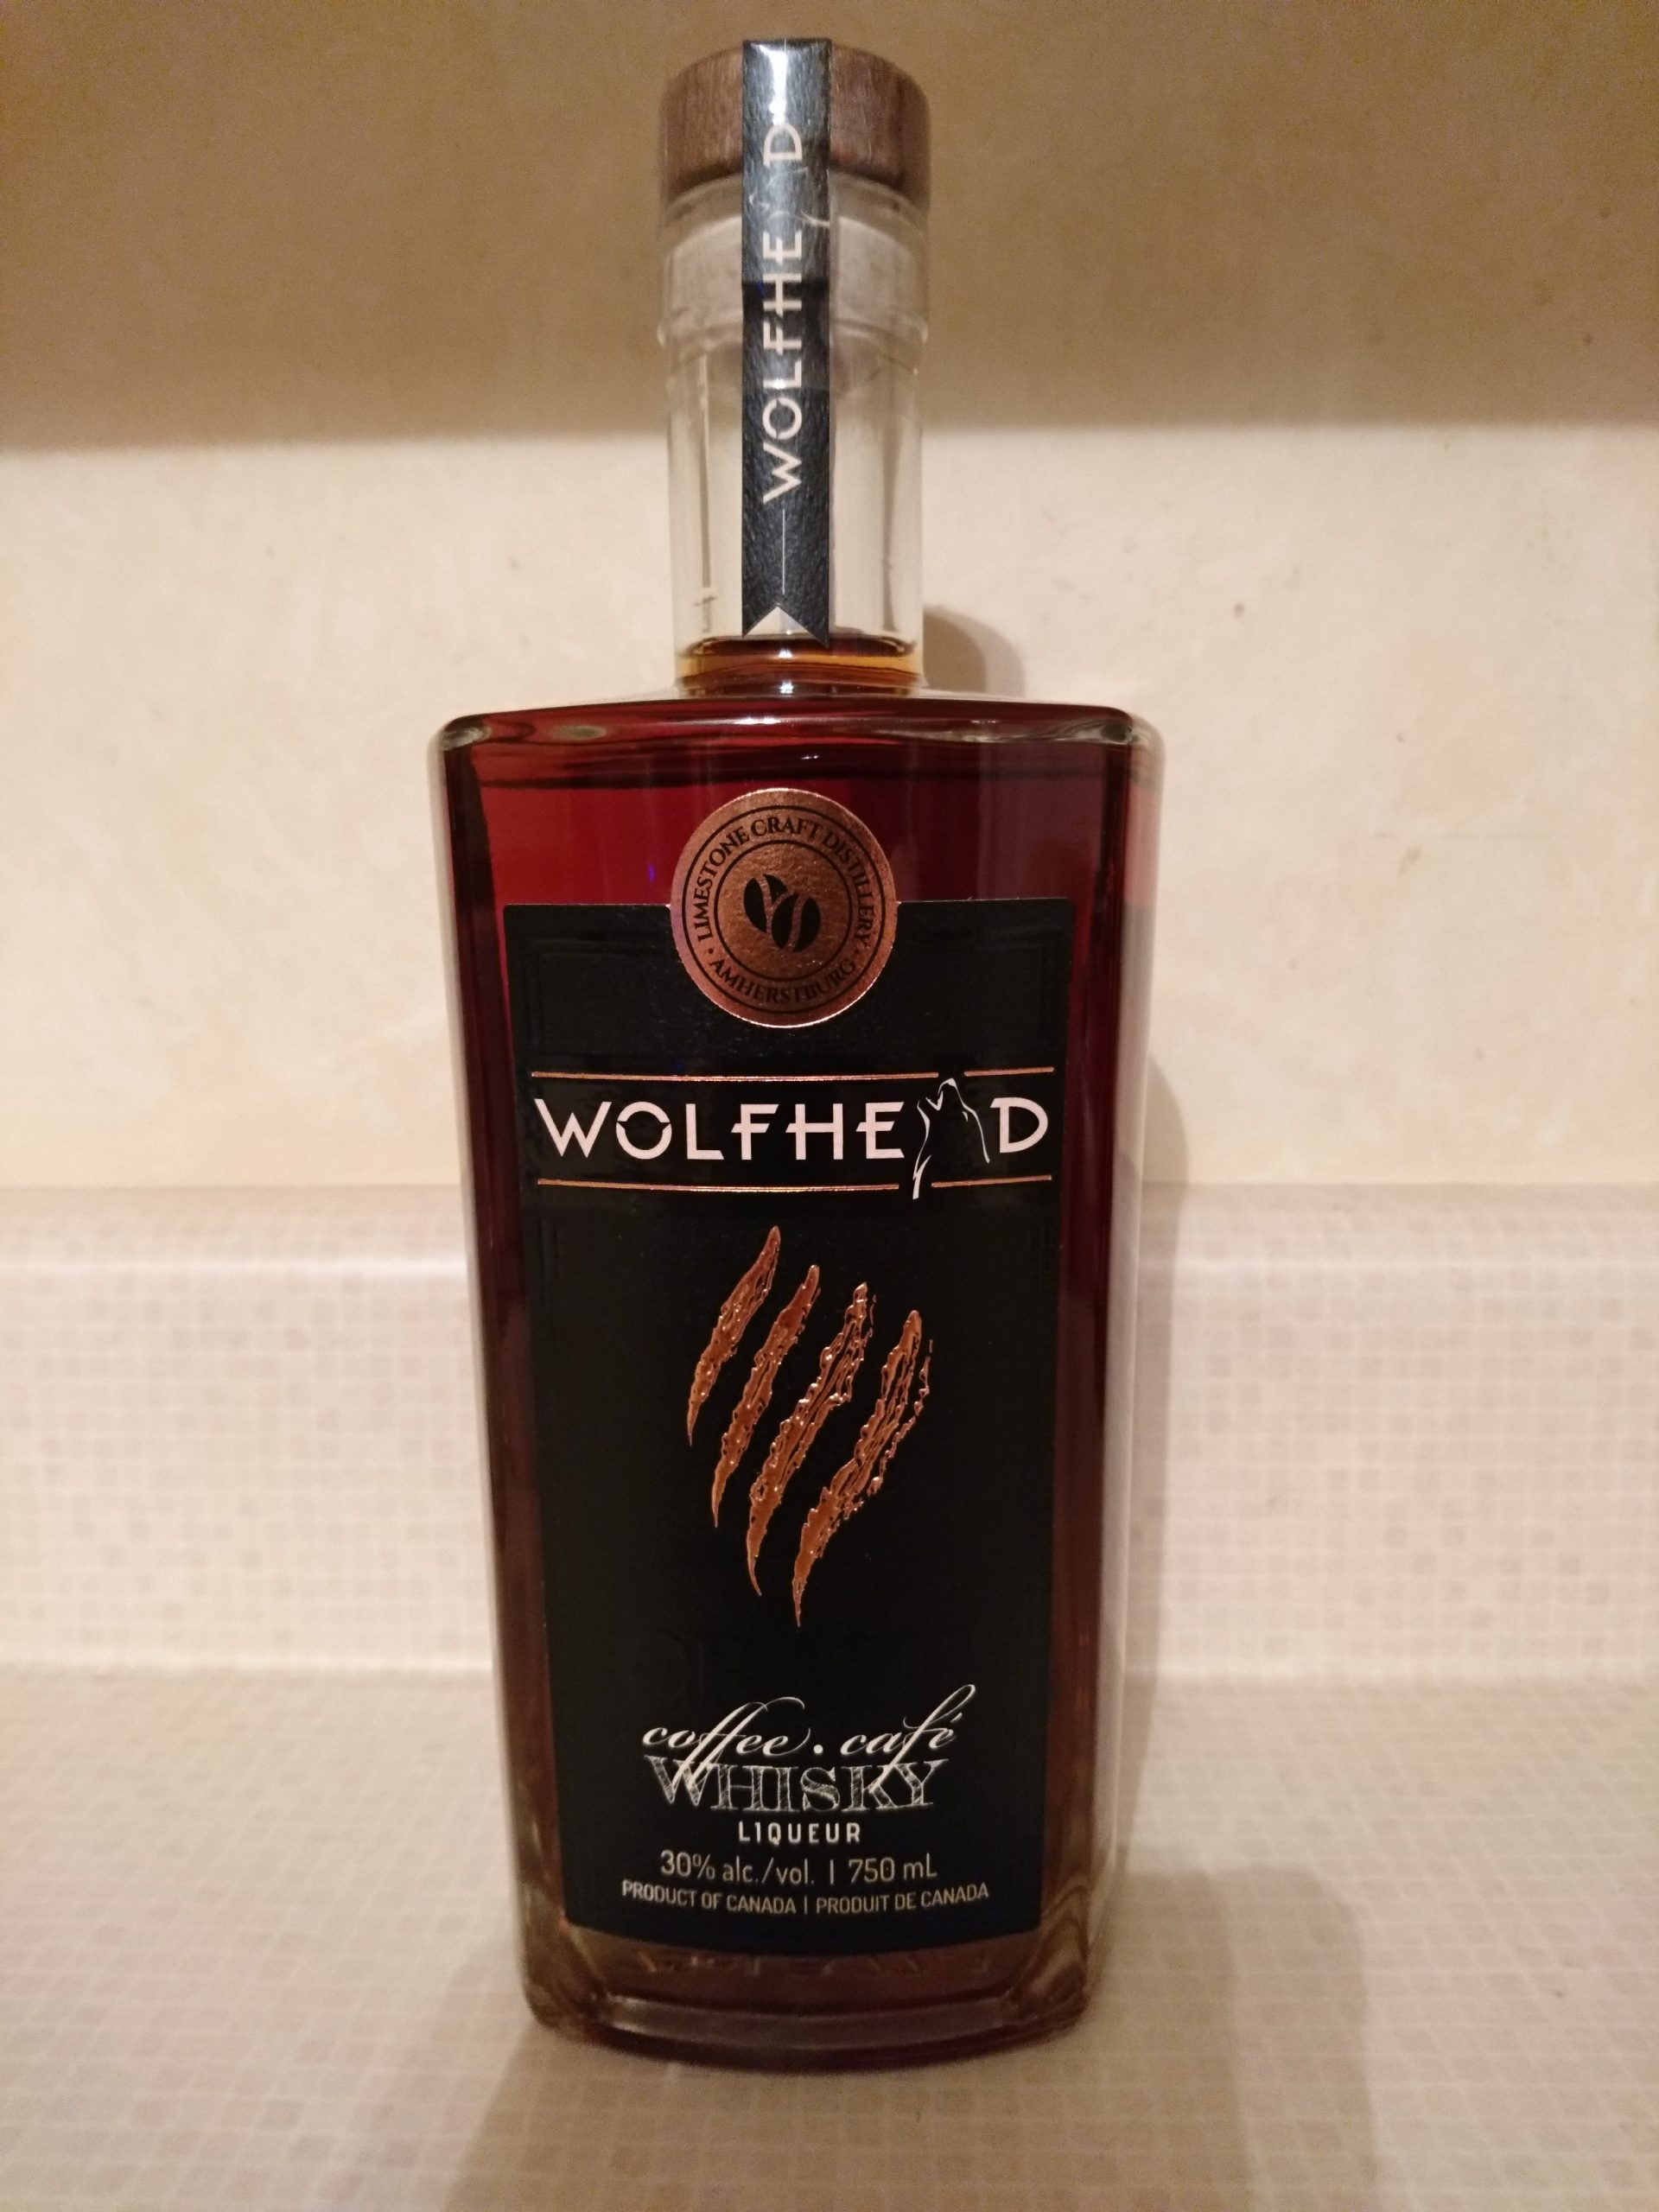 Wolfhead Craft Whisky Coffee Café